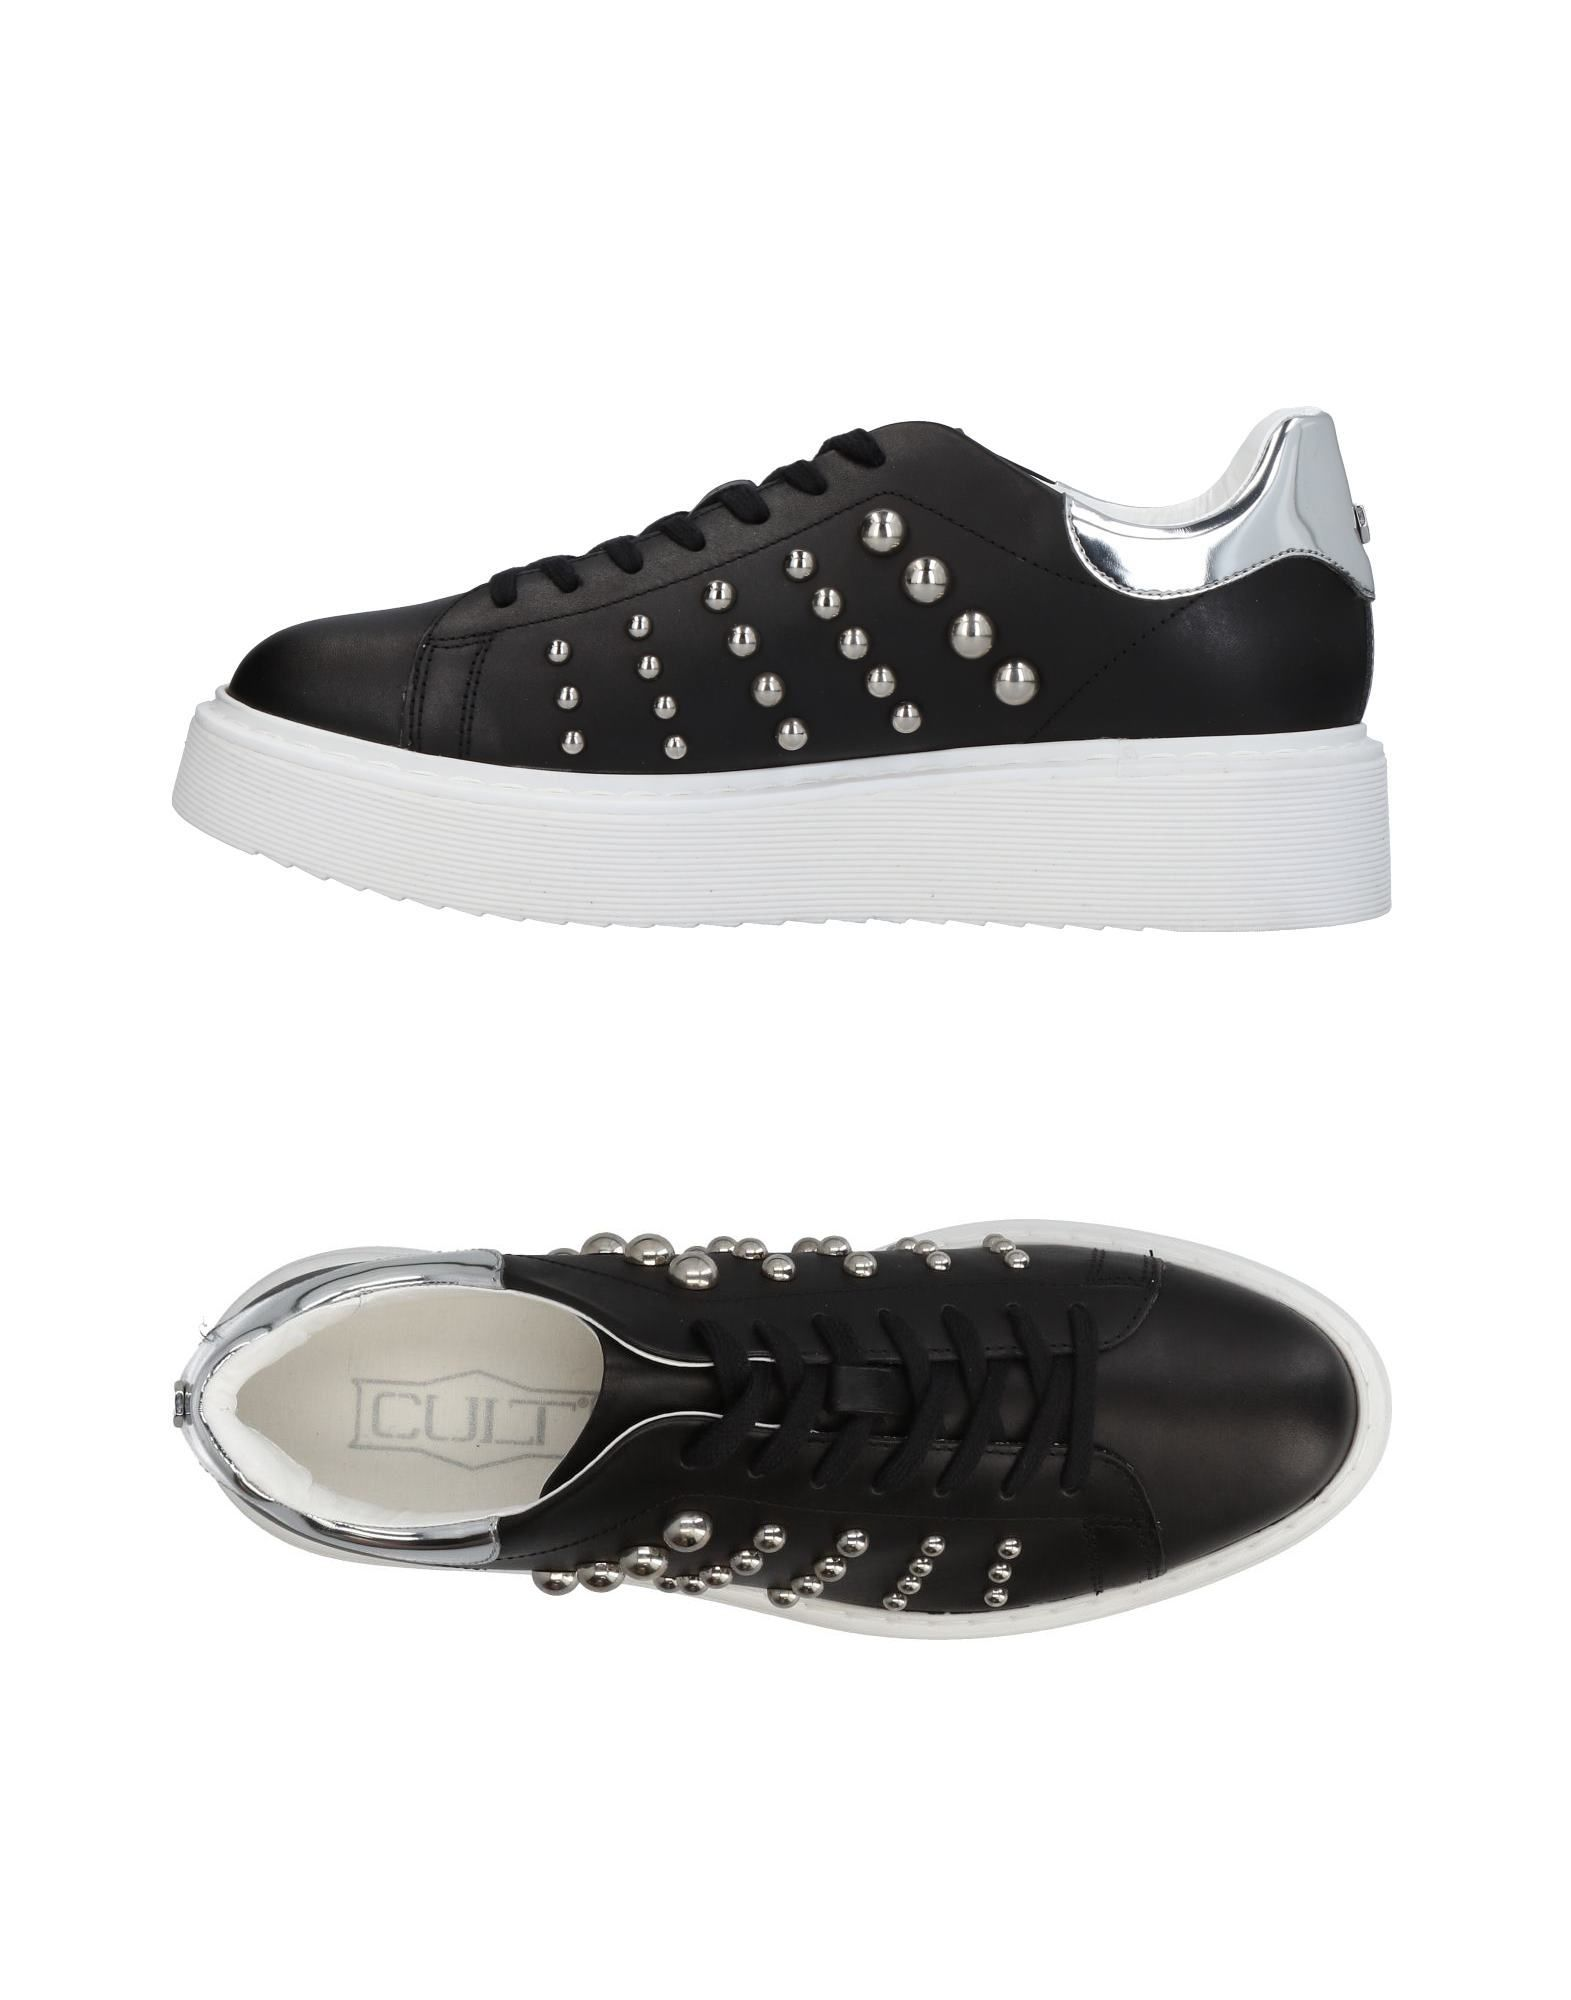 Sneakers Cult Donna - Acquista online su